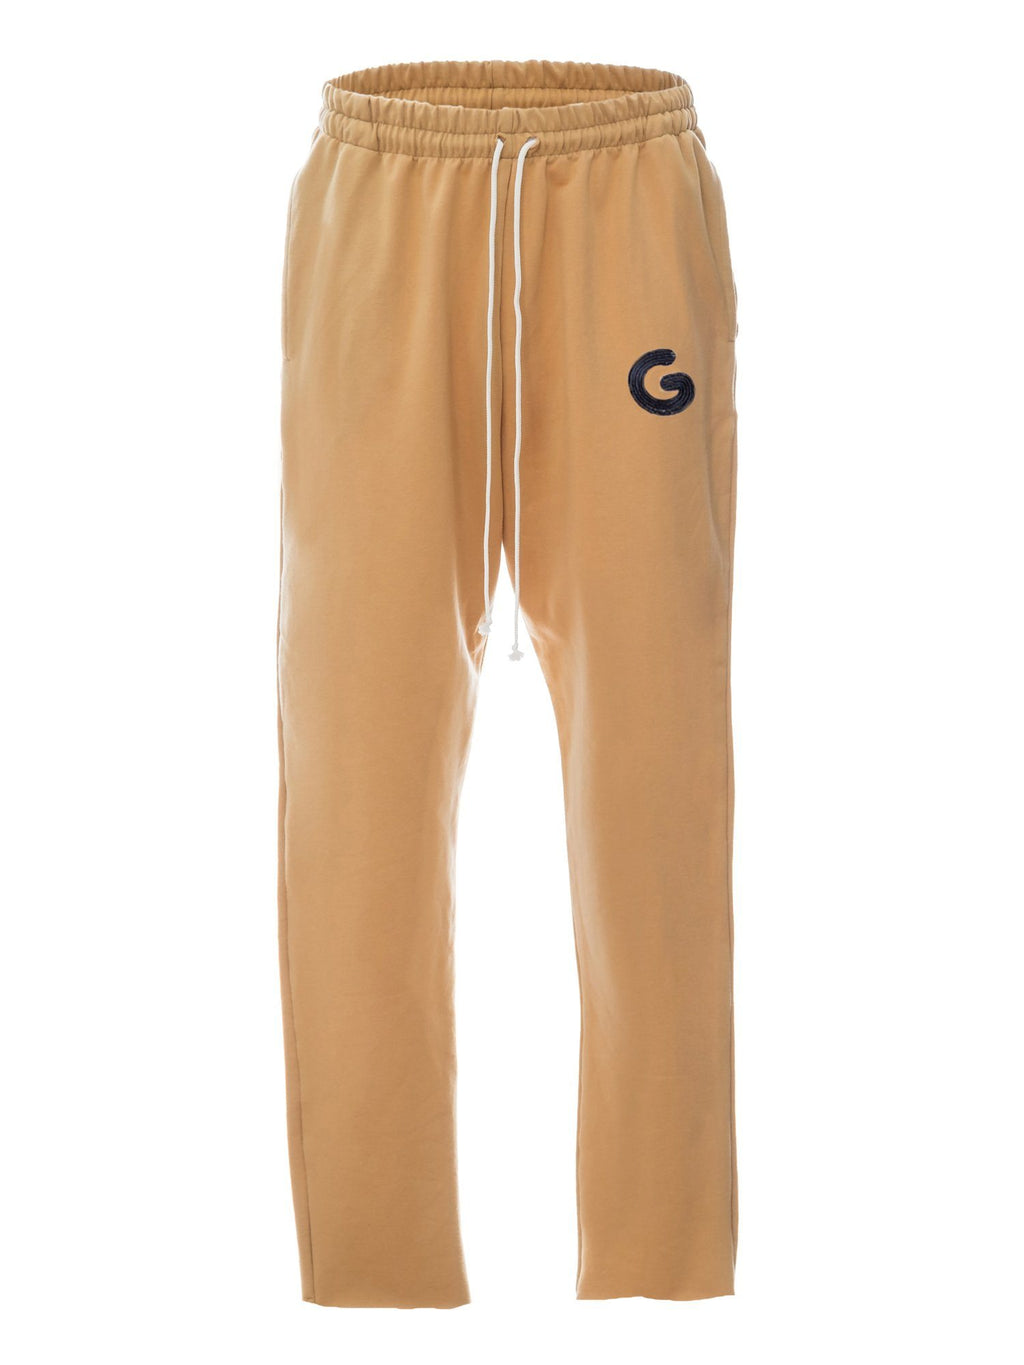 TheG Essential Joggers // rattan